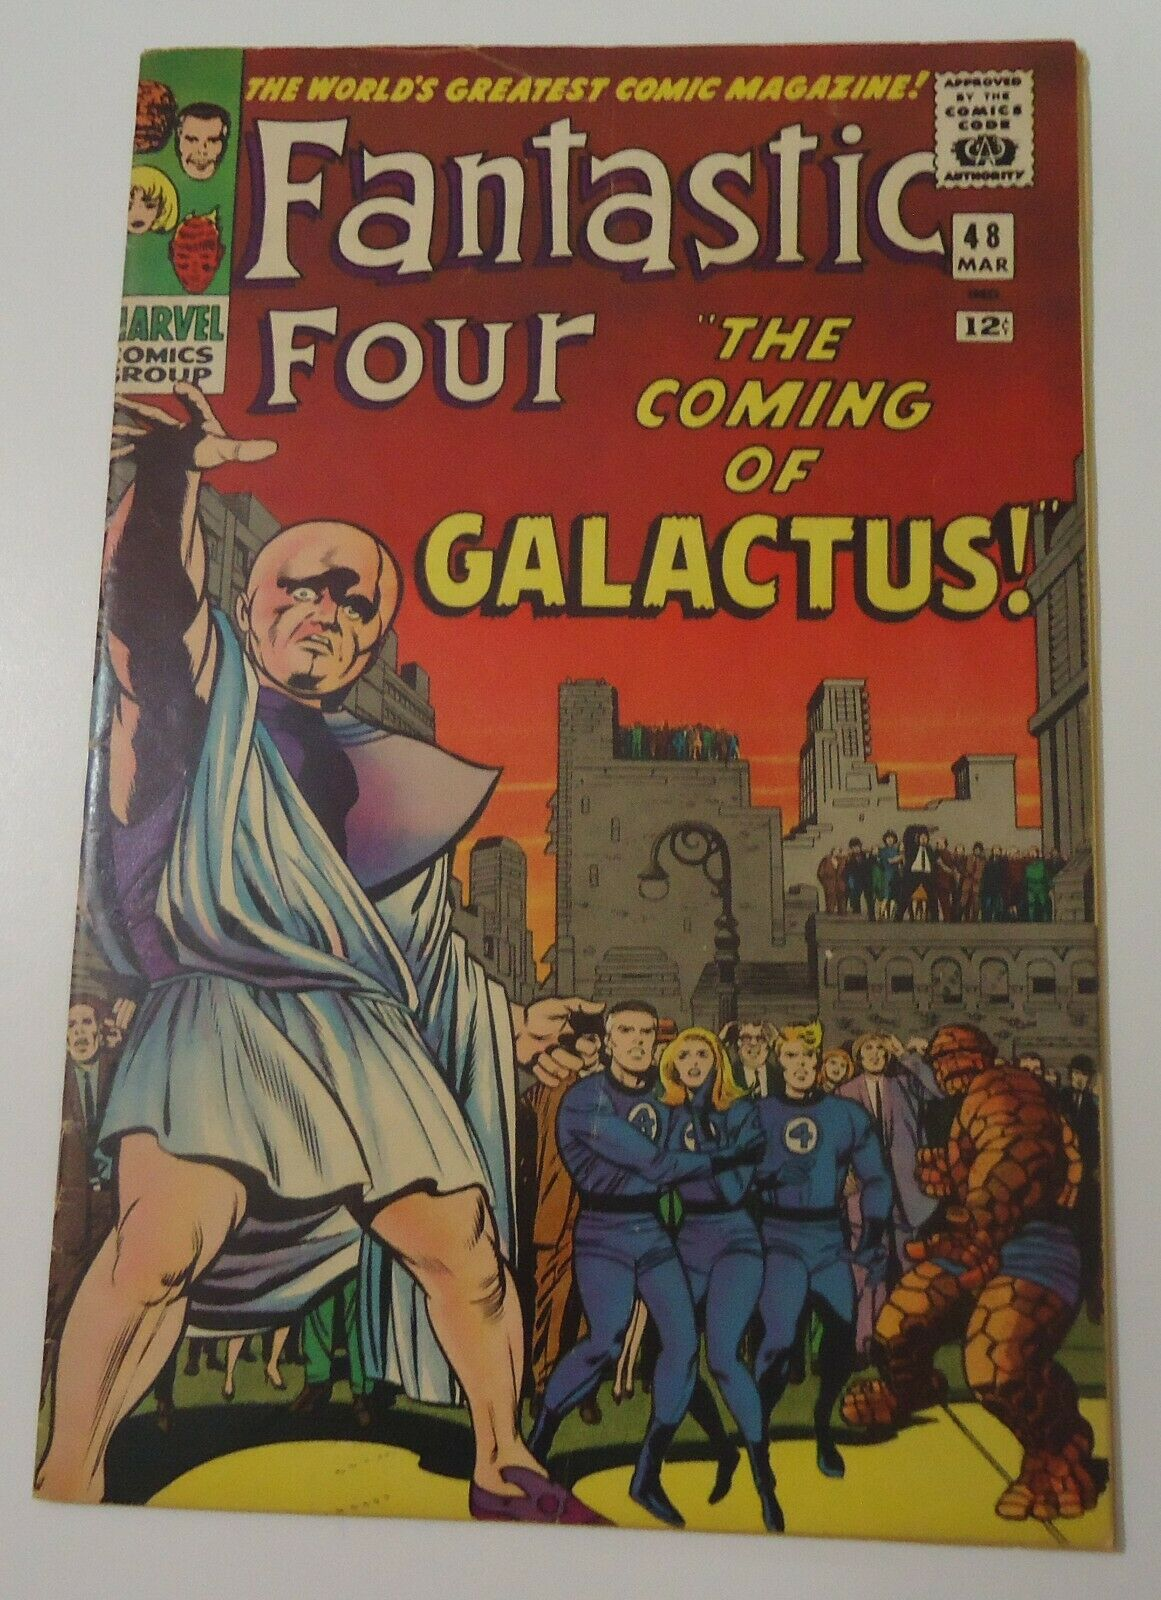 FANTASTIC FOUR #48 *FIRST APP SILVER SURFER & GALACTUS FINE+ CONDITION or BETTER